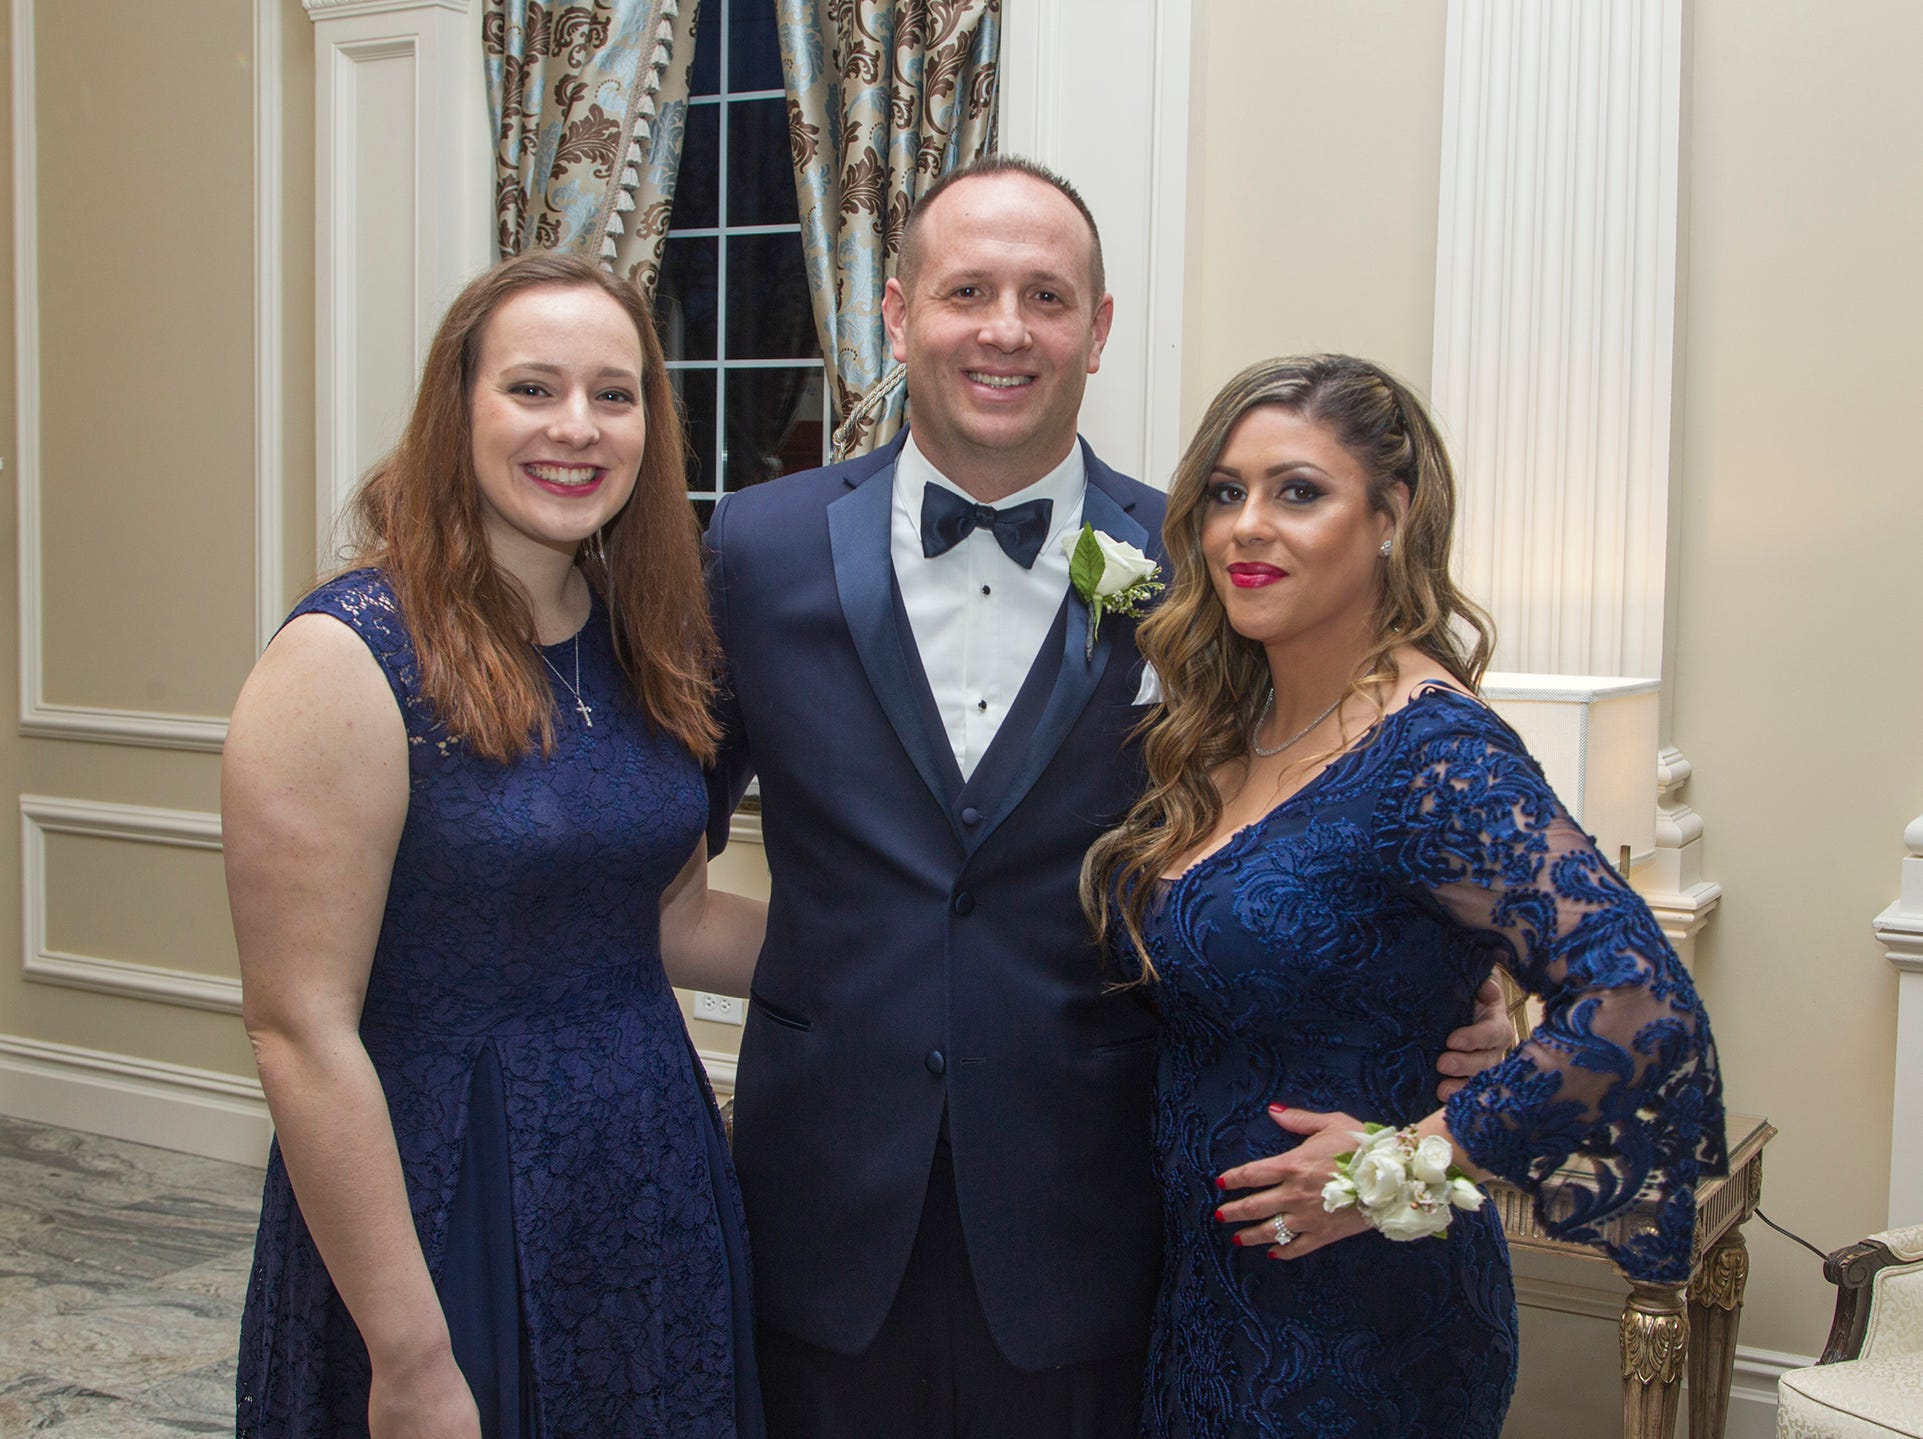 Rebecca Citarella, Michael and Fran Hettesheimer. Ramapo College held its 37th Annual Distinguished Citizens Dinner at Rockleigh Country Club. 03/02/2019